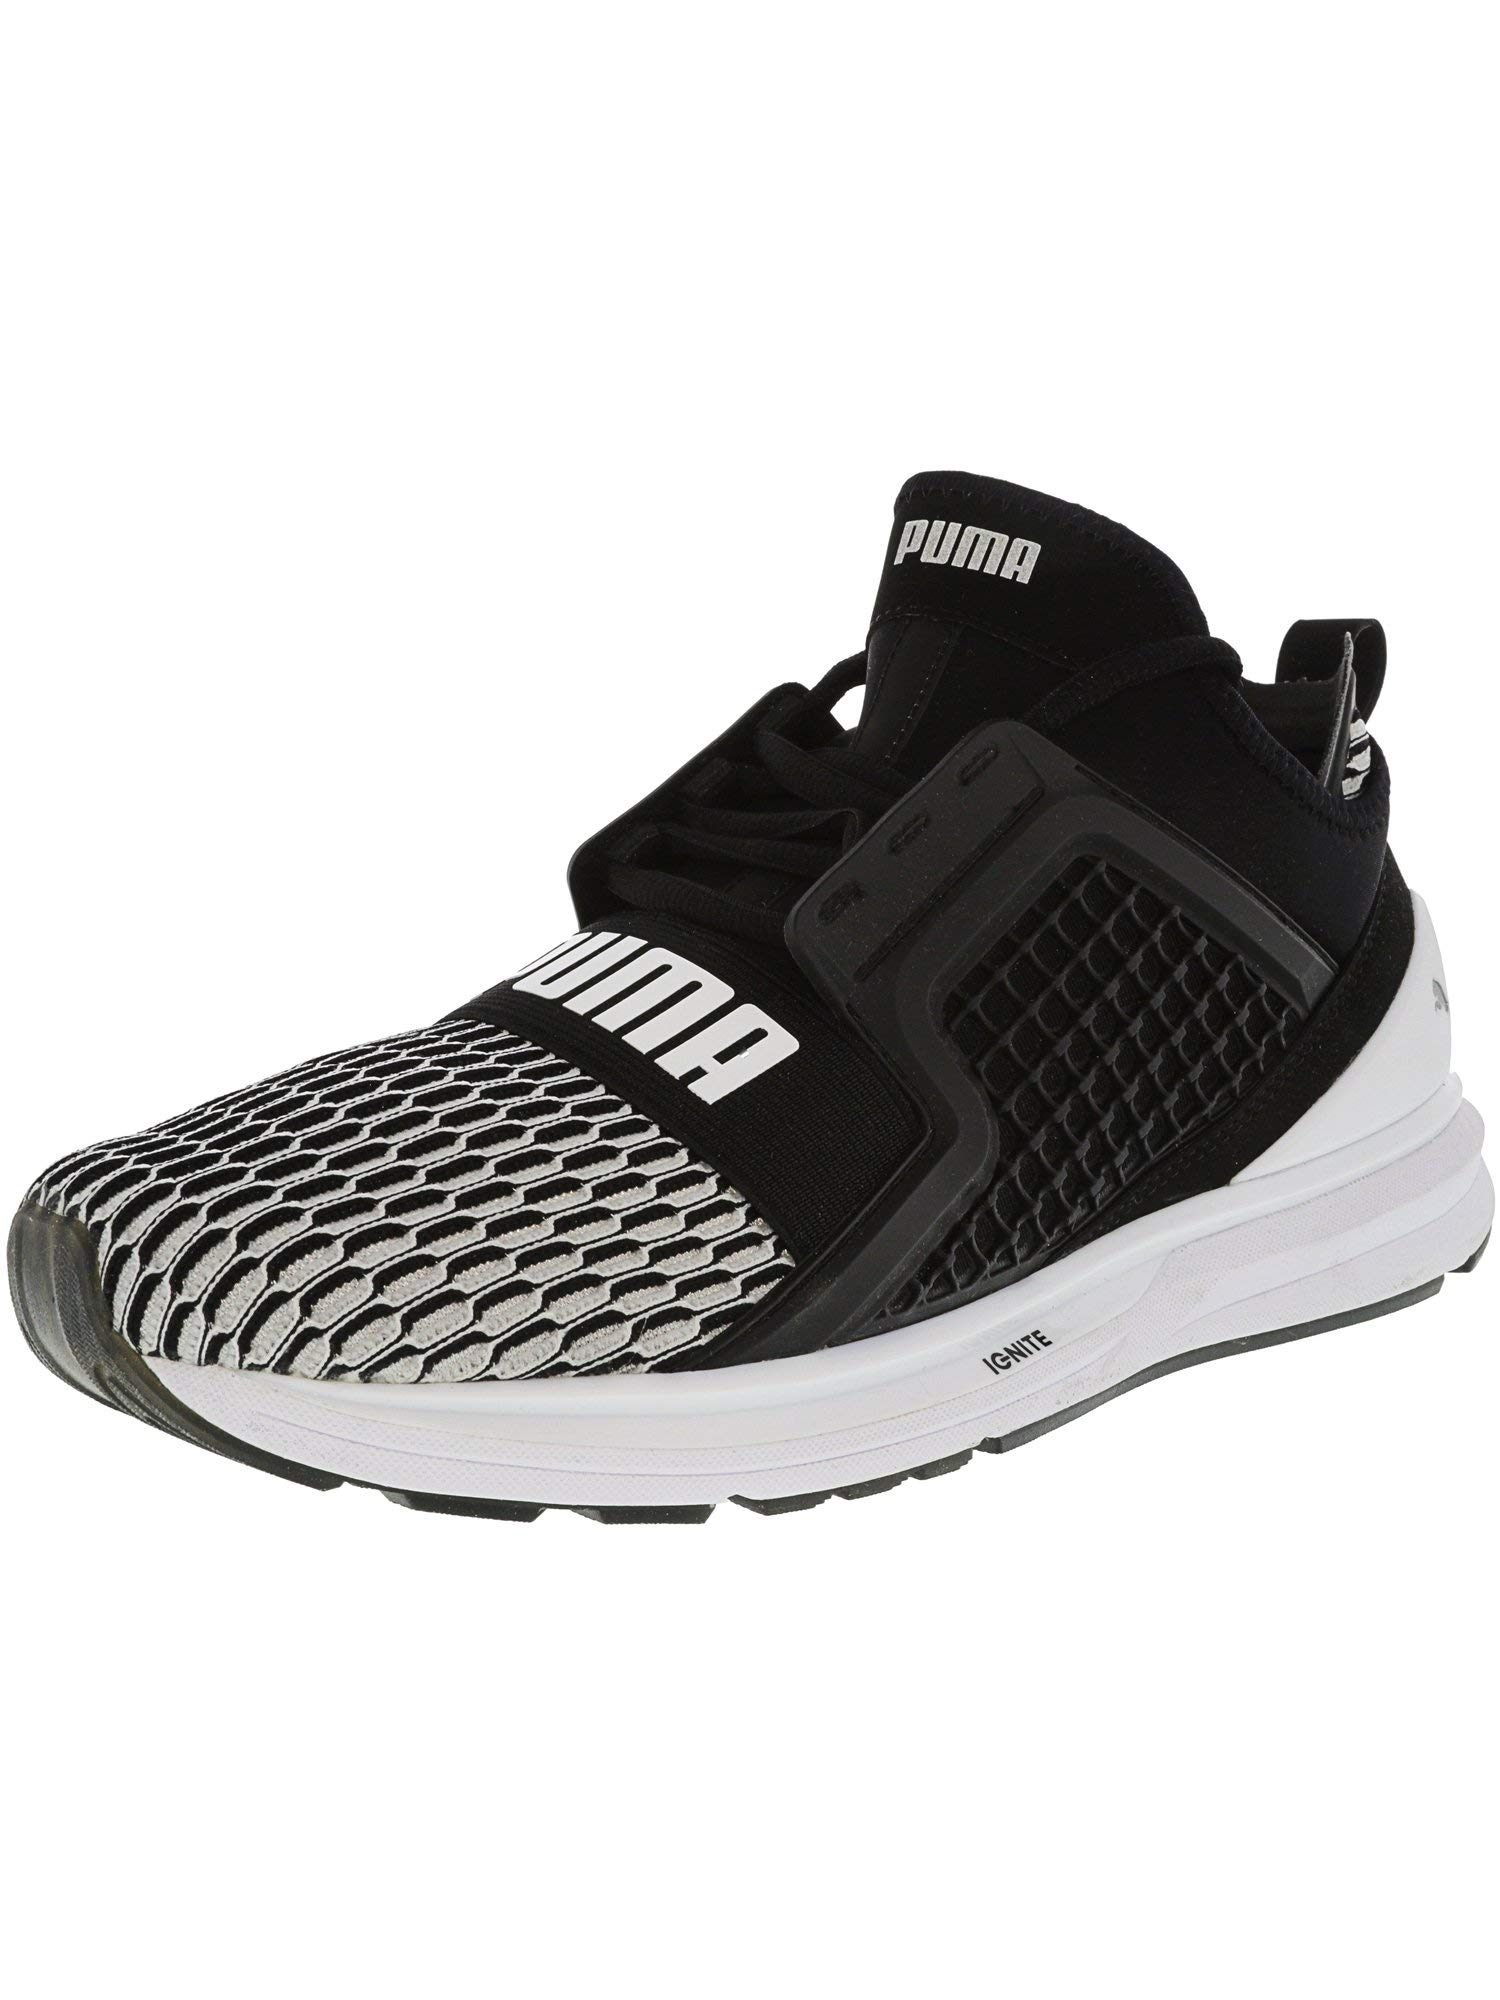 09945c991fc032 Galleon - PUMA Men s Ignite Limitless Black White Ankle-High Basketball Shoe  - 11M